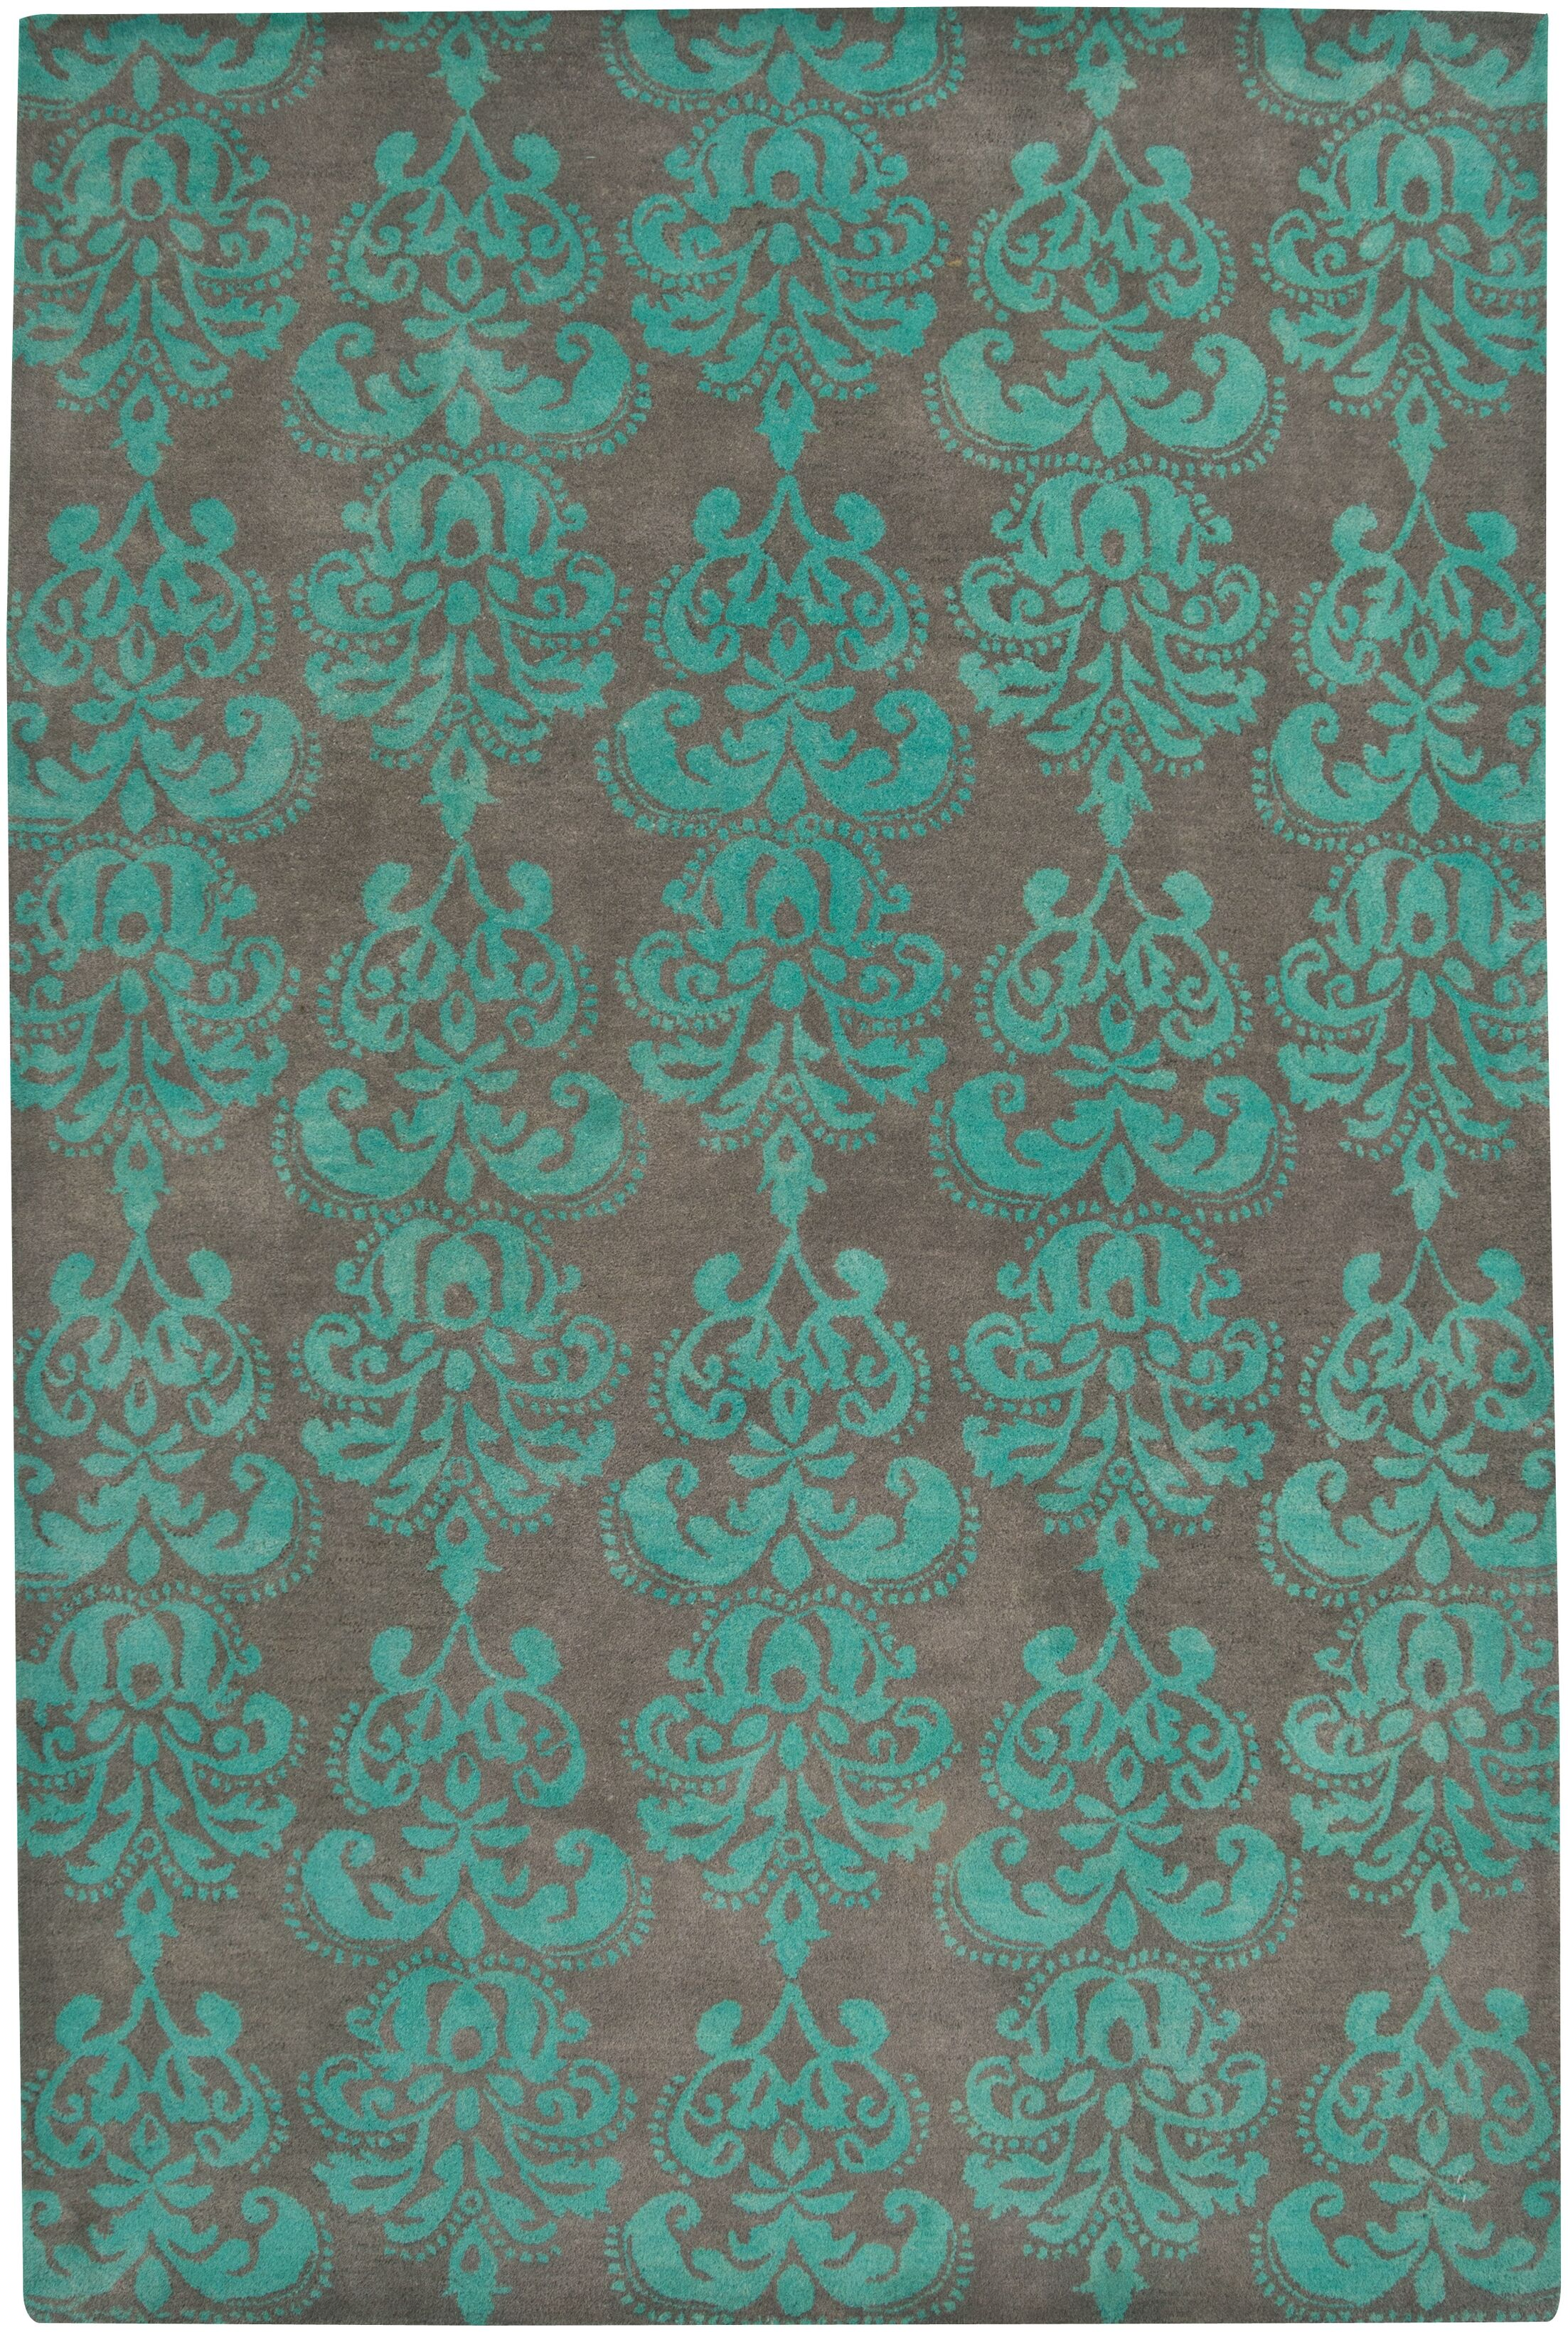 Brightwaters Hand-Tufted Cinder Area Rug Rug Size: 3'6